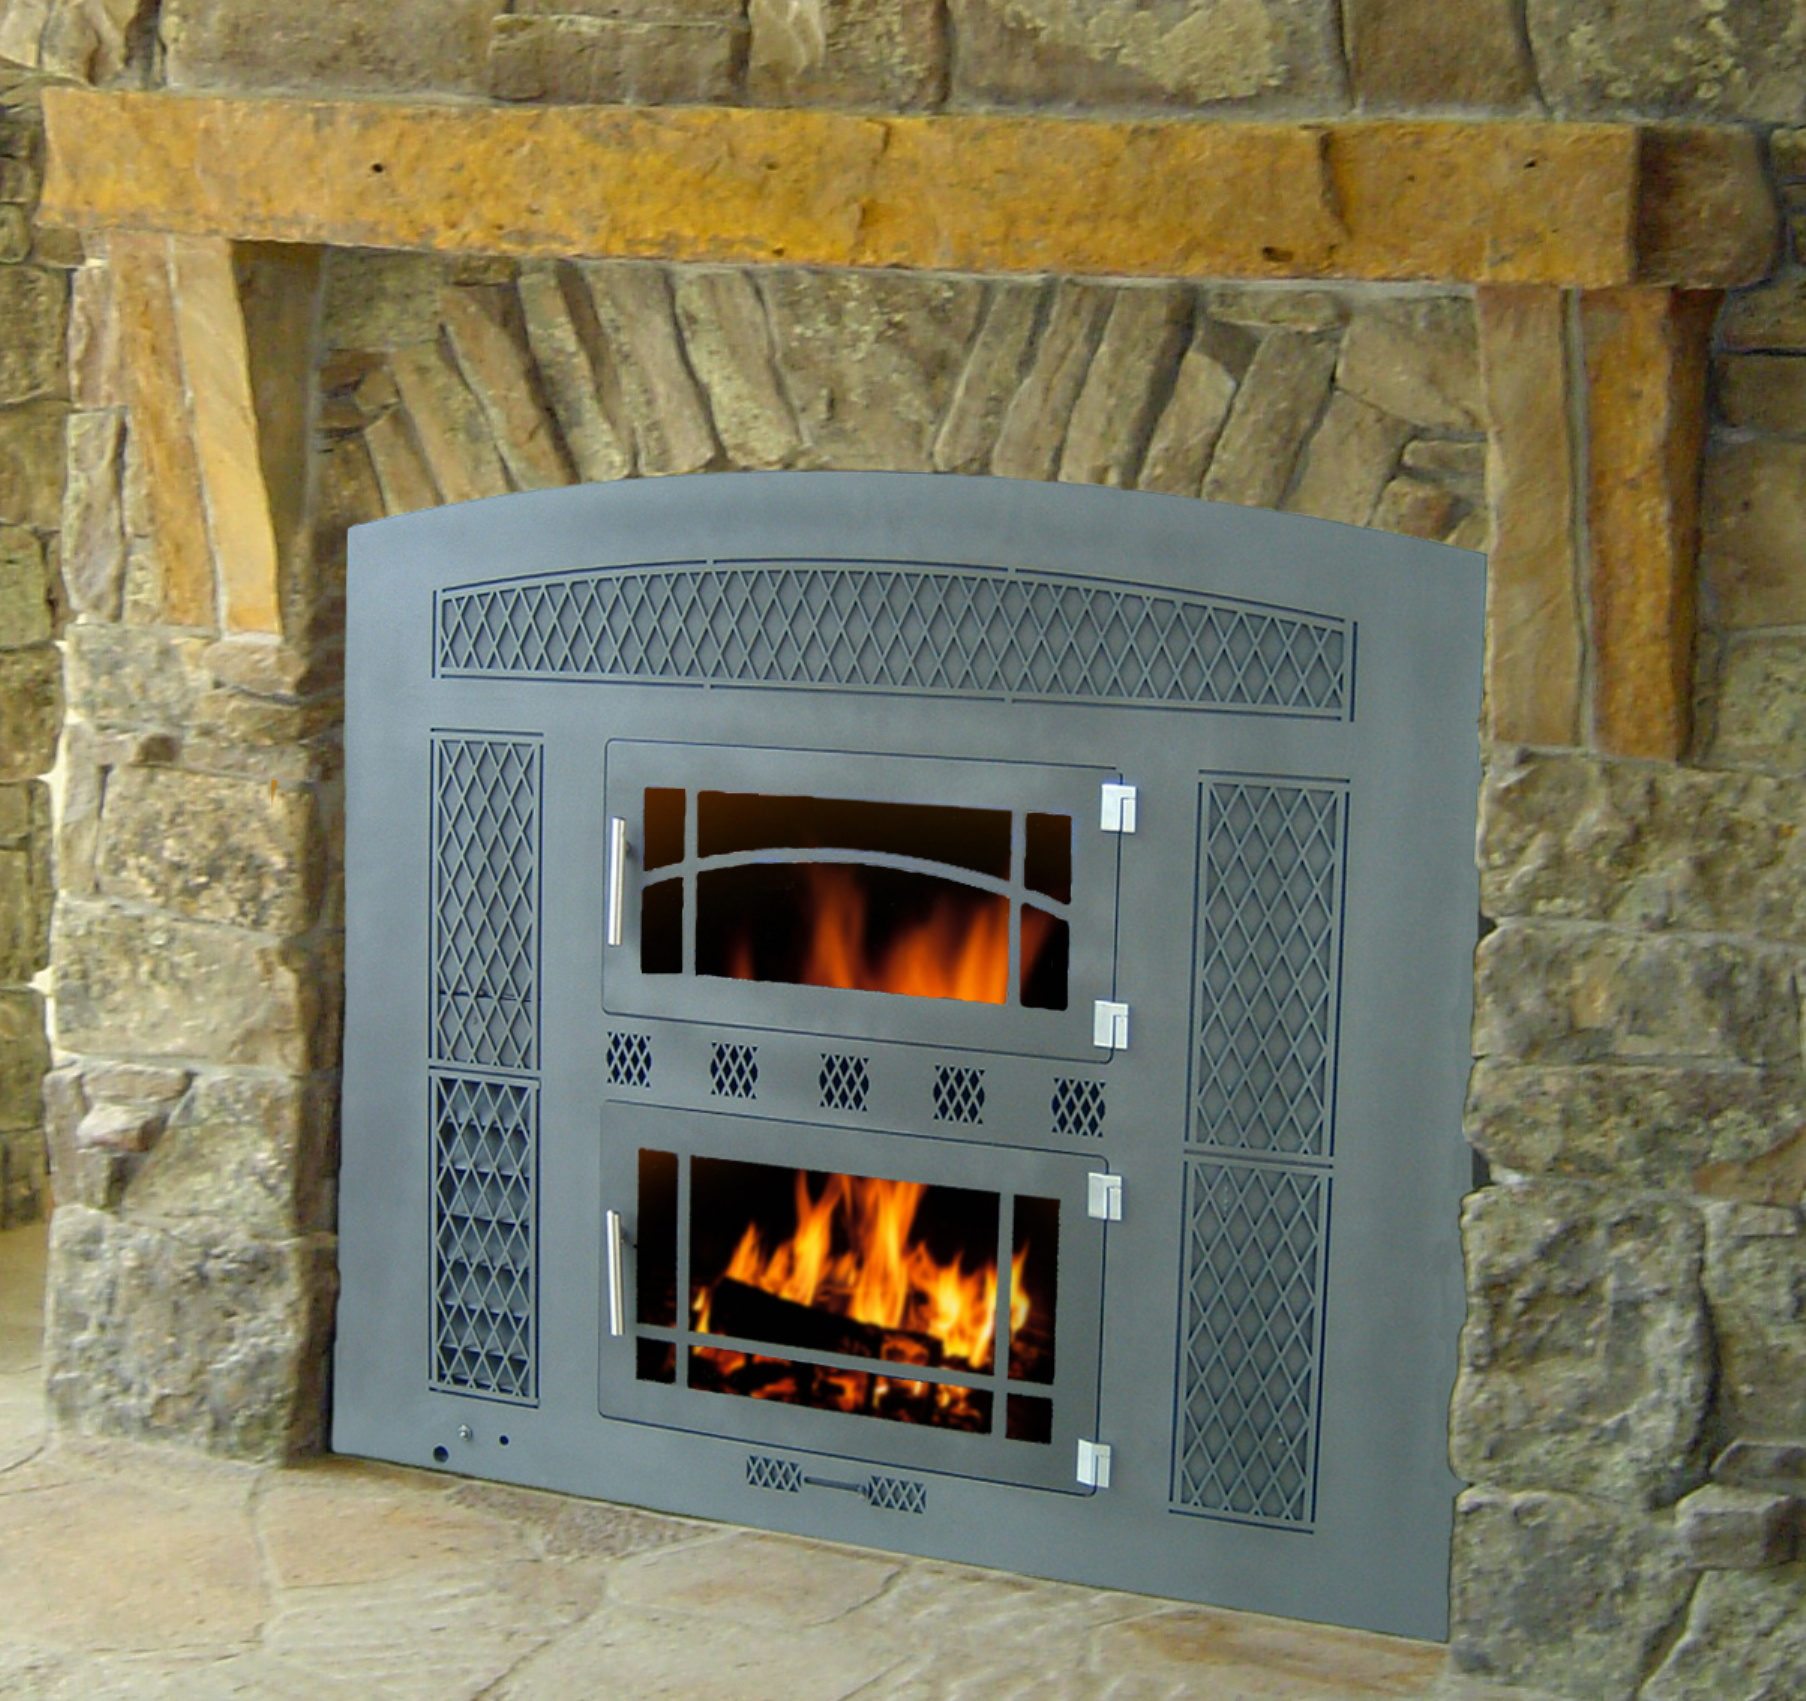 Heat Exchangers For Fireplaces Images